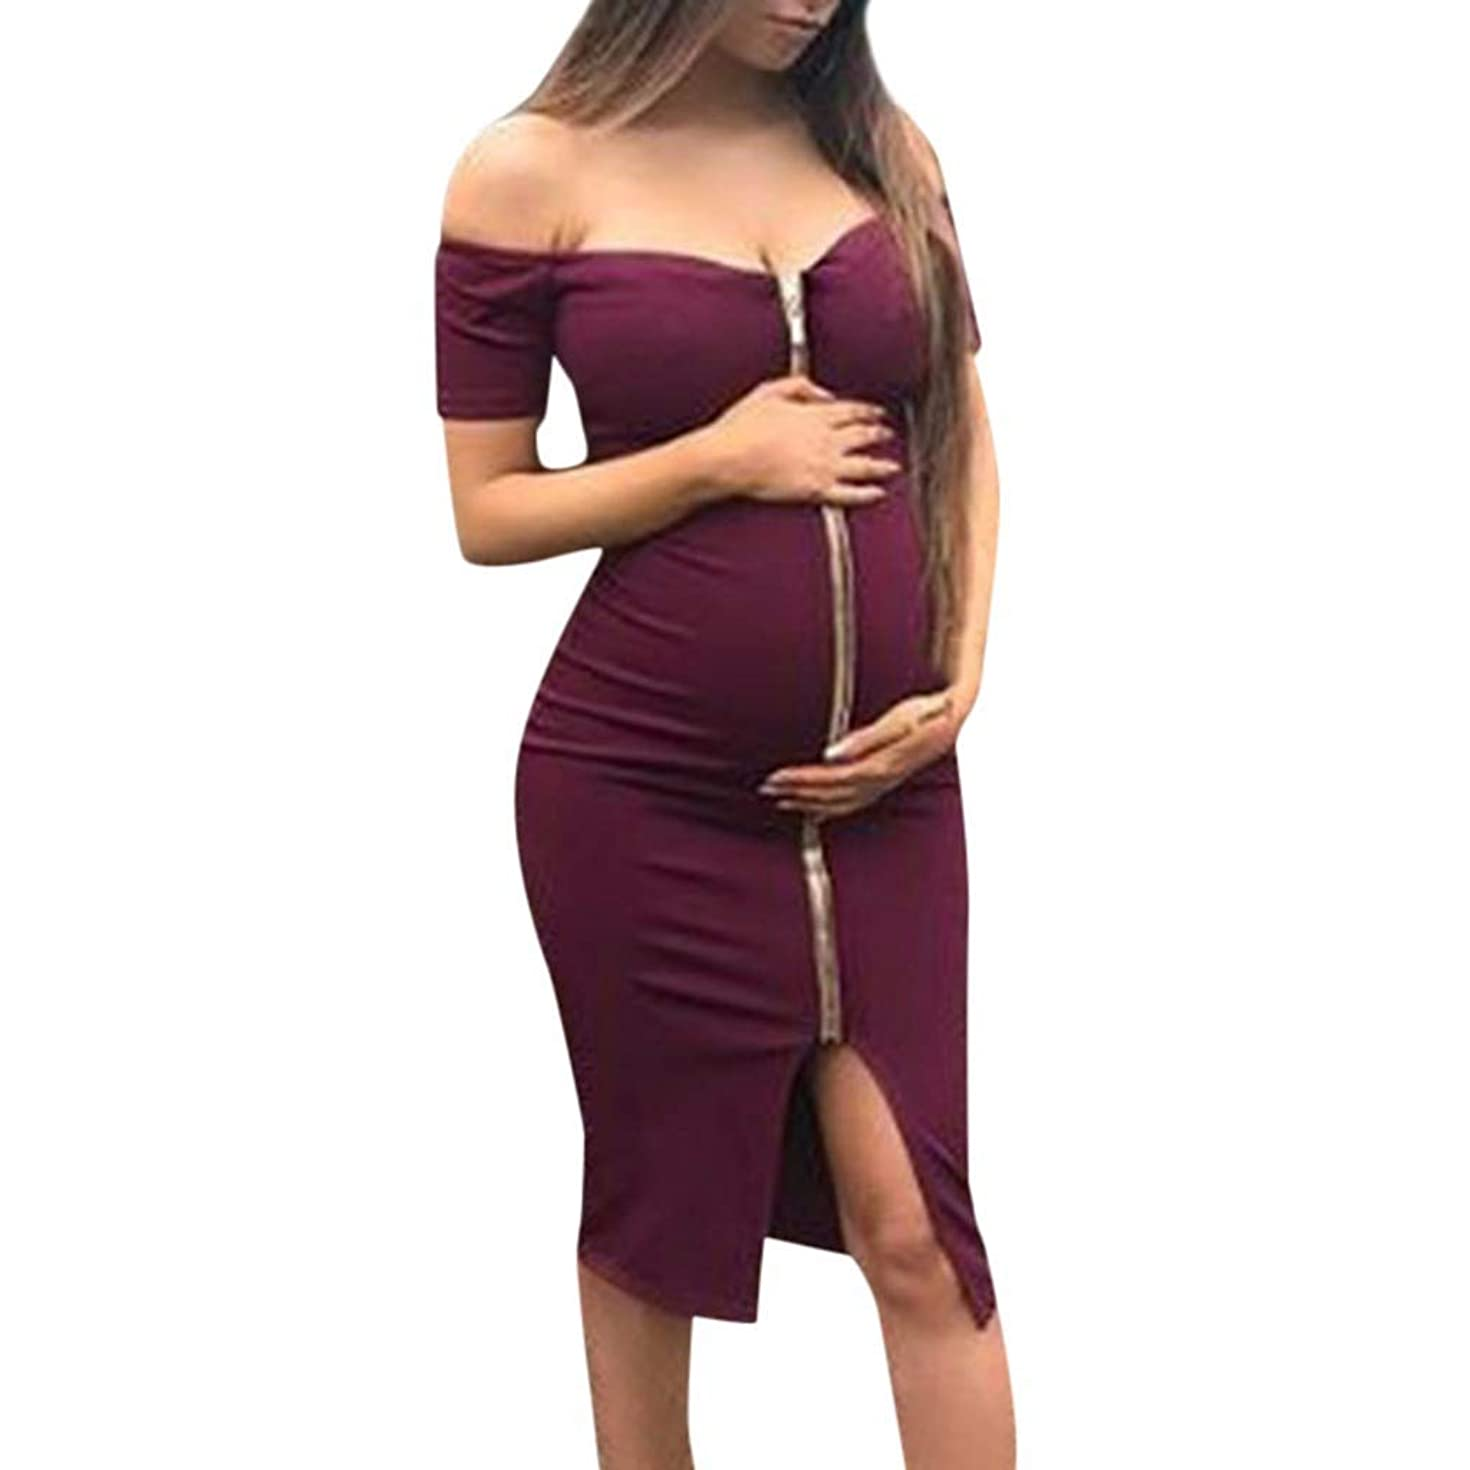 Iusun Women's Maternity Dress Off-Shoulder Sexy Zipper Solid Sundress Nursing Baby Breastfeeding Pregnants for Summer Daily Vacation Holiday